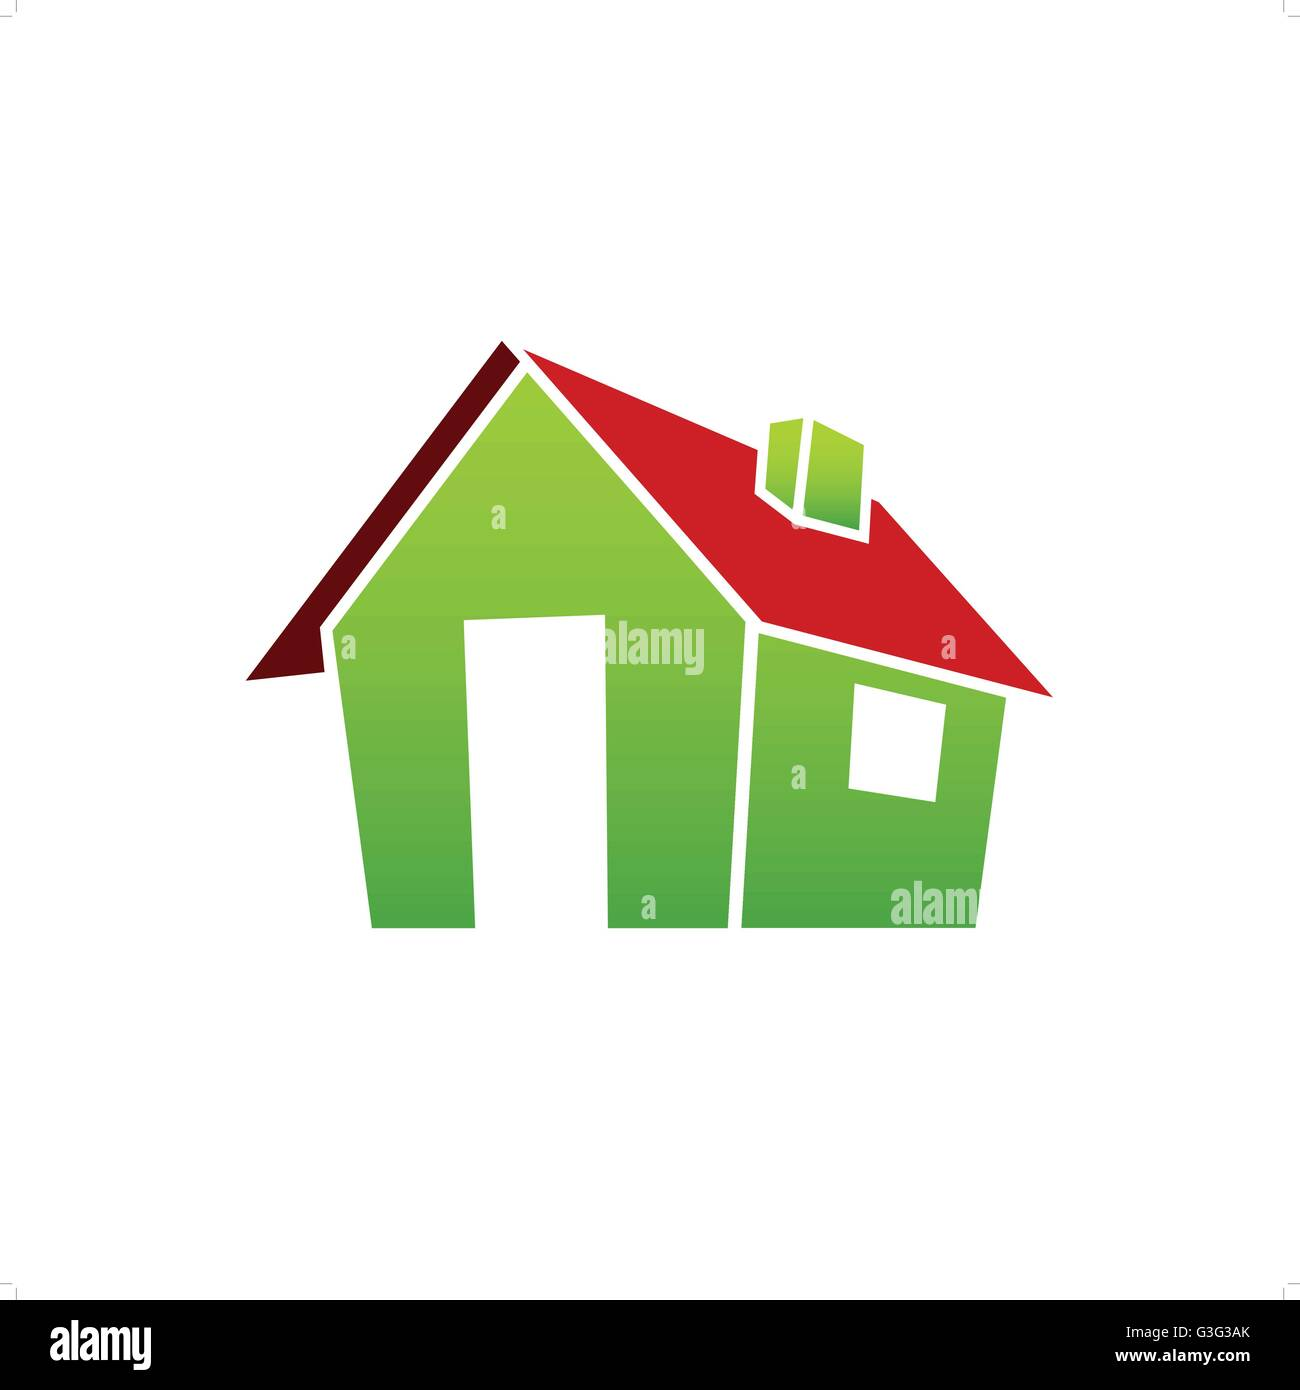 3D green village house with red roof vector illustration isolated on white background. - Stock Image